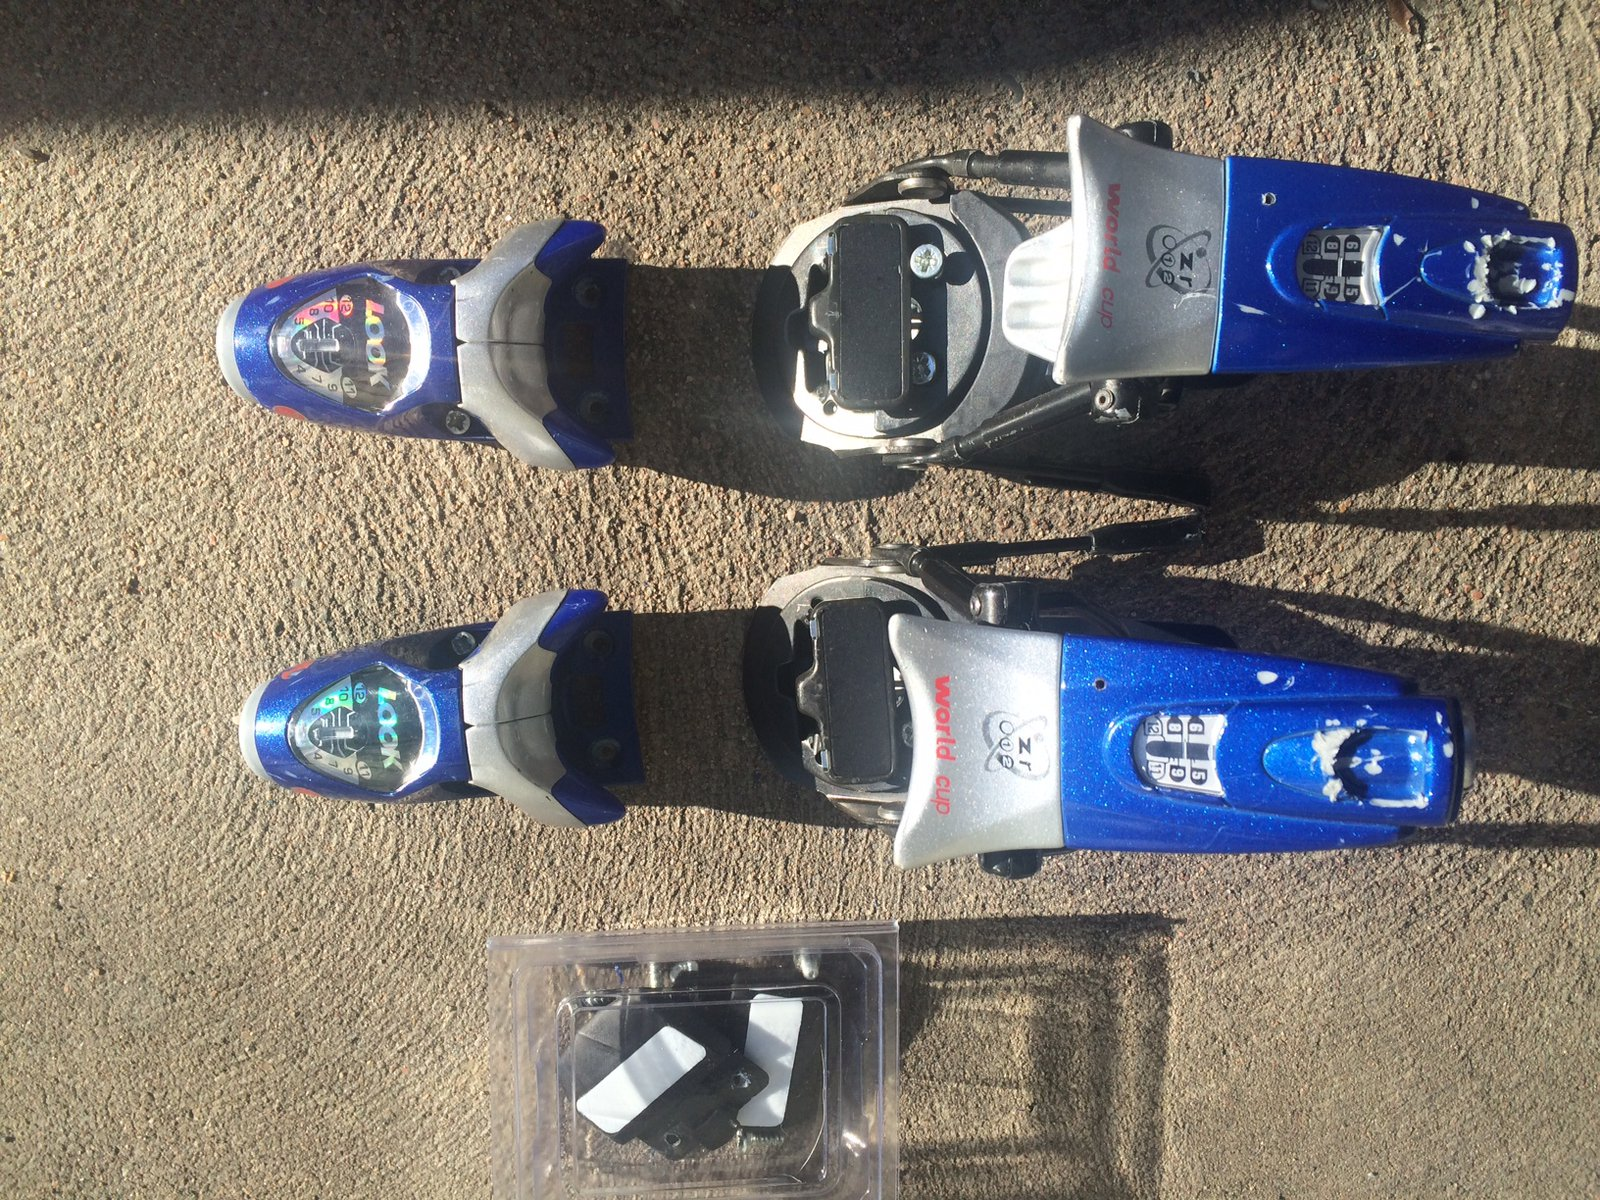 Look ZR12 bindings FKS style